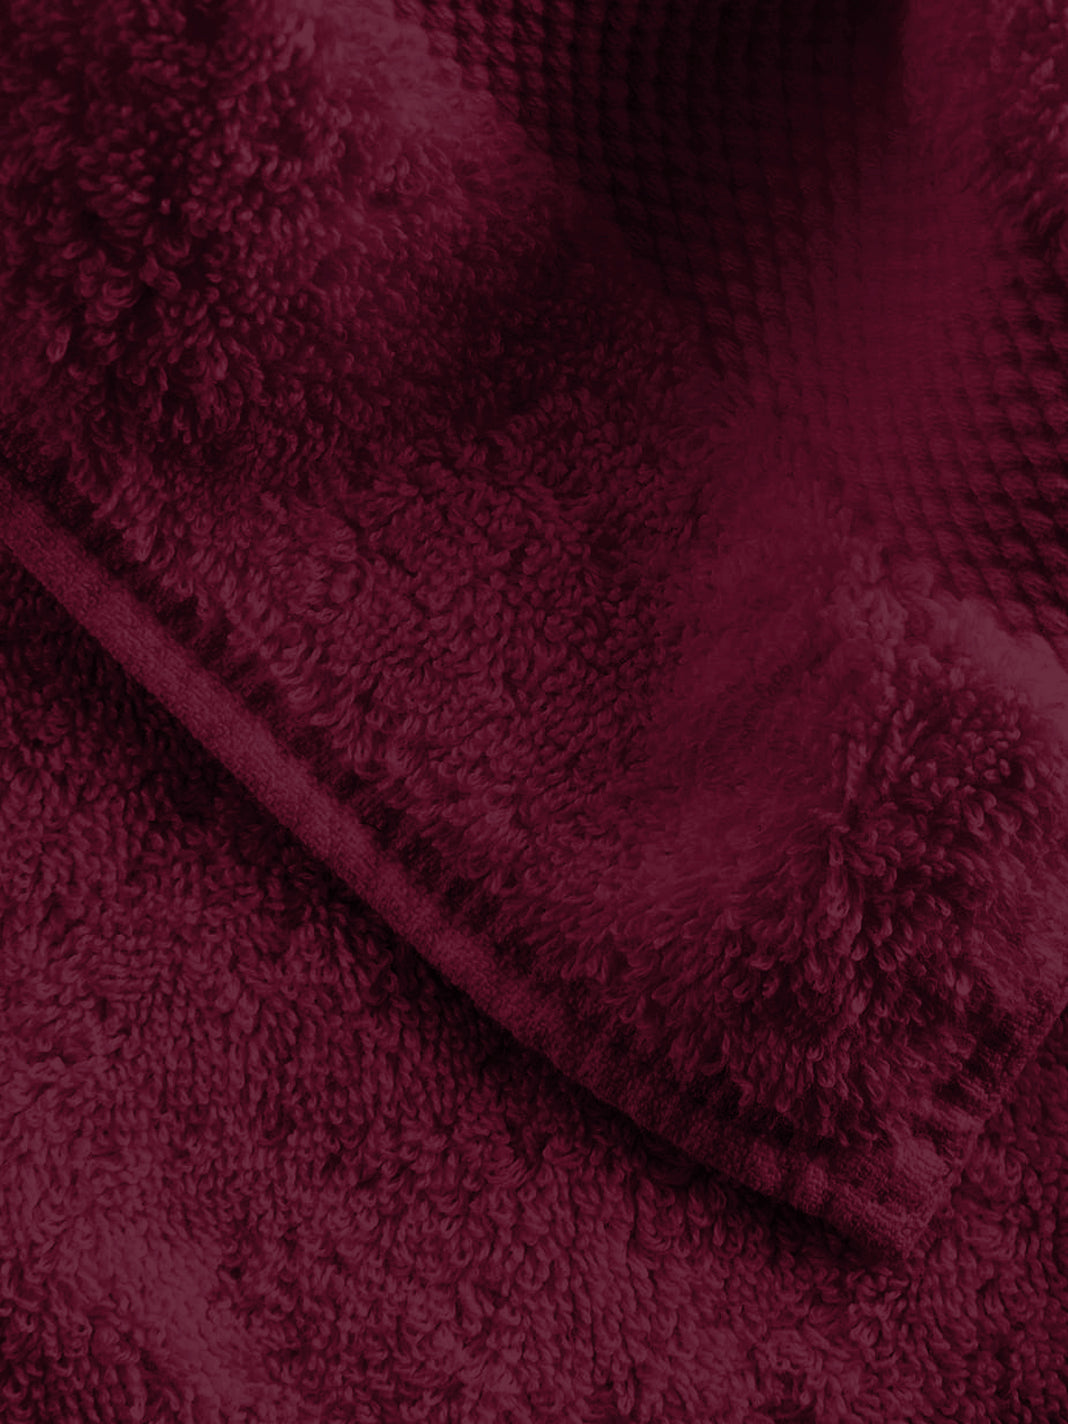 Bath Towel - Burgundy